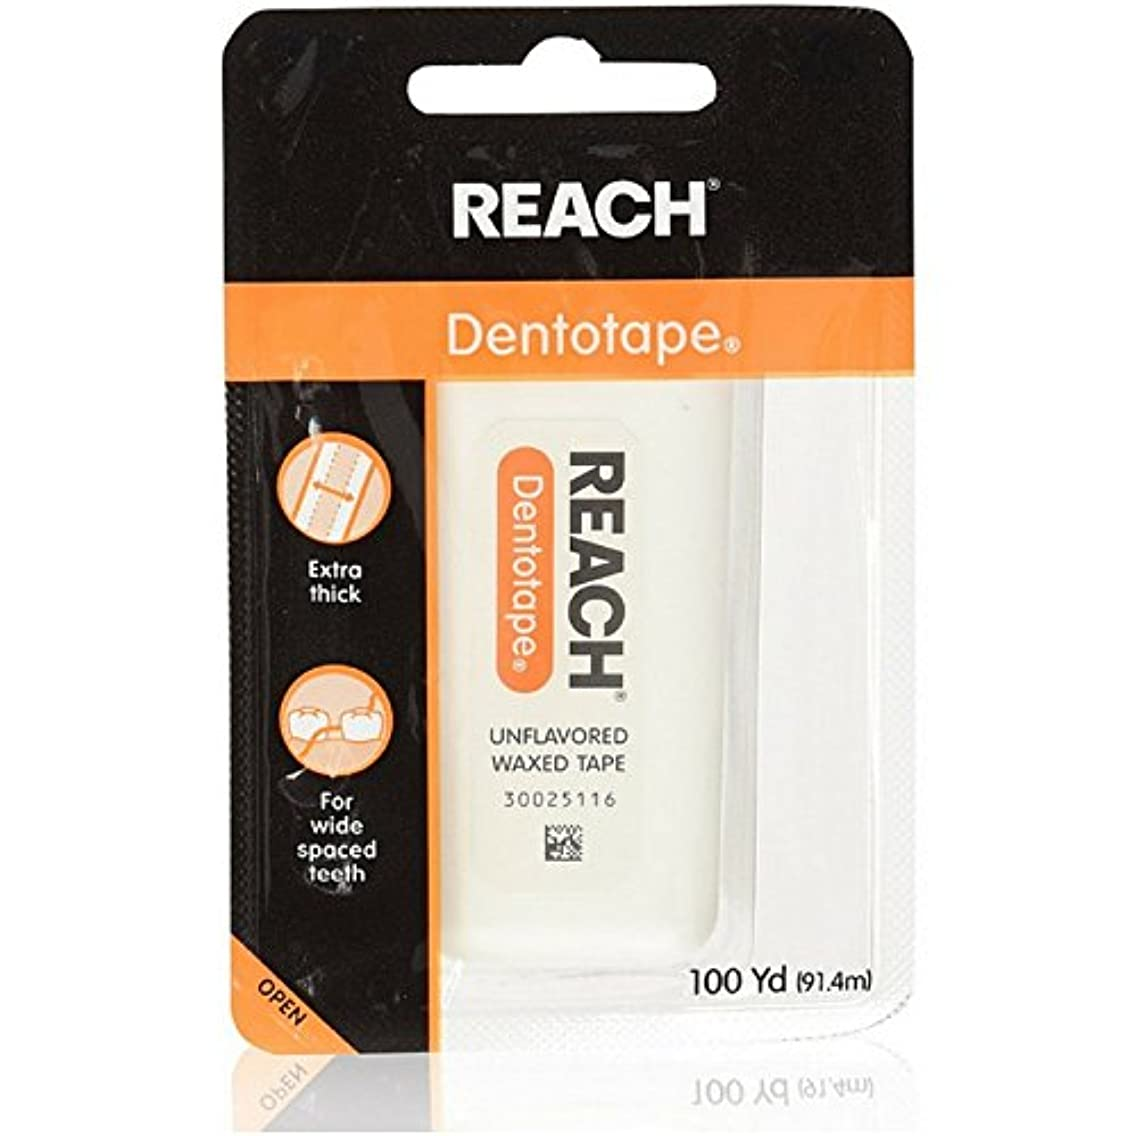 REACH Dentotape Waxed Tape, Unflavored 100 Yards (Pack of 7)